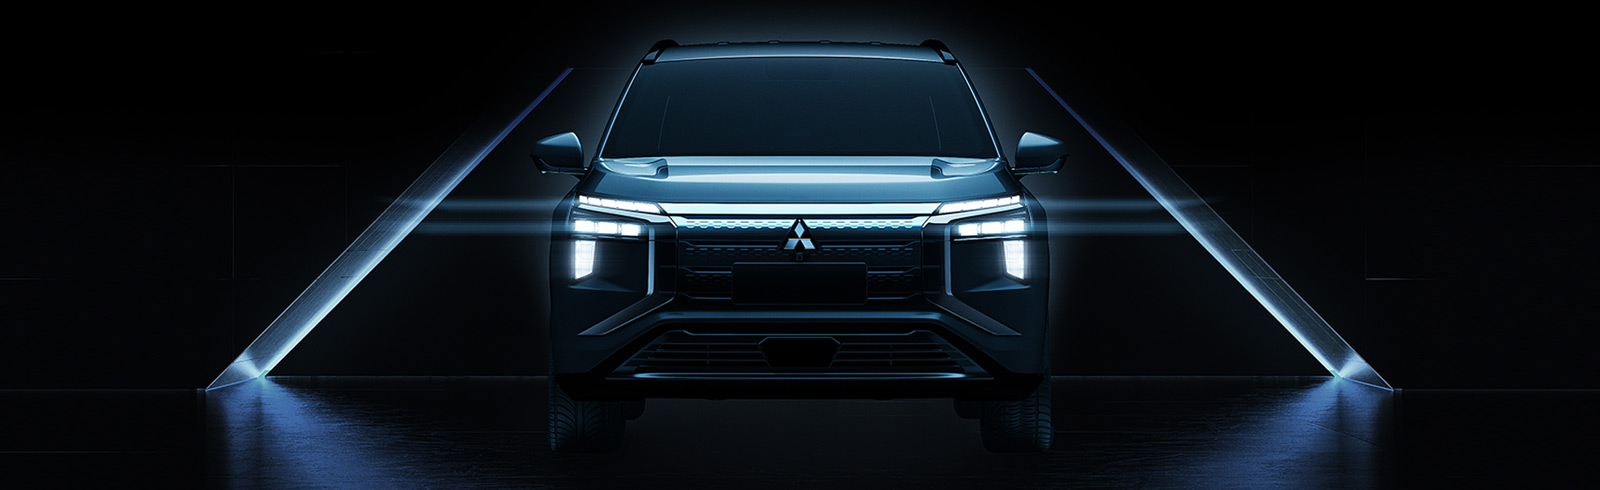 Mitsubishi teases the all-electric SUV AIRTREK at Auto Shanghai 2021